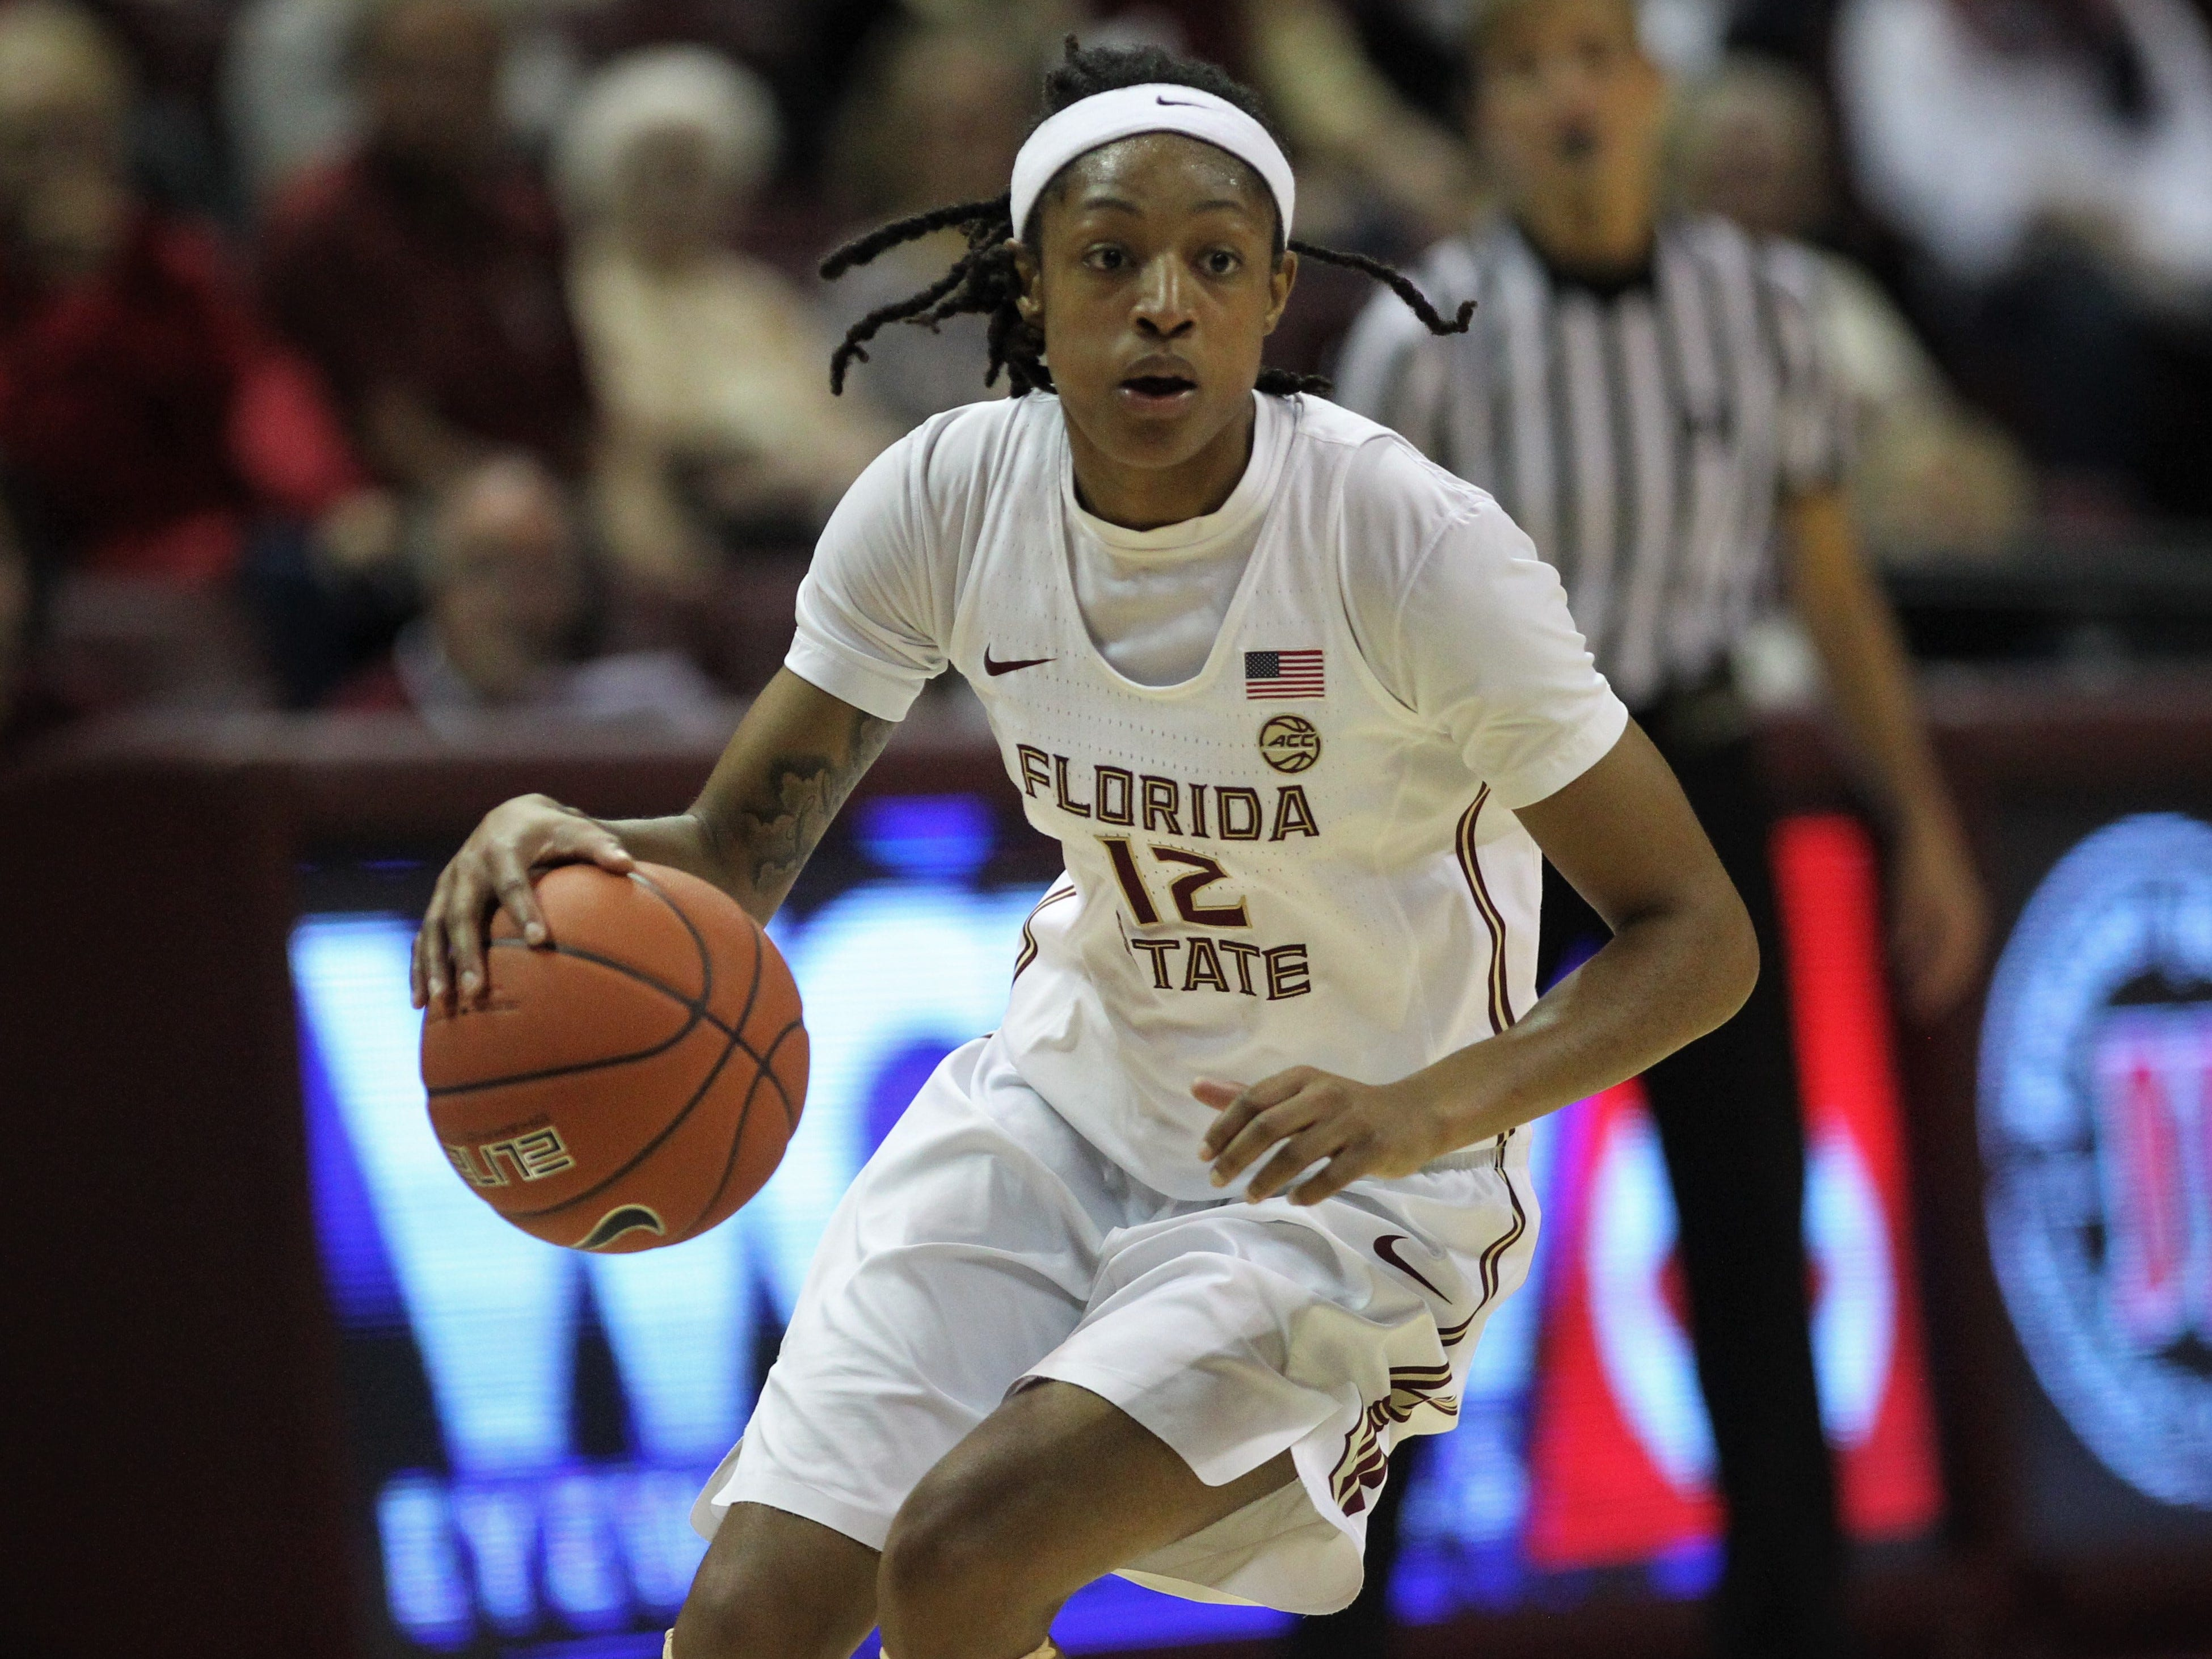 Florida State guard Nicki Ekhomu drives to the basket during the second half of the Seminoles' game against Florida at the Tucker Civic Center on Nov. 11, 2018.